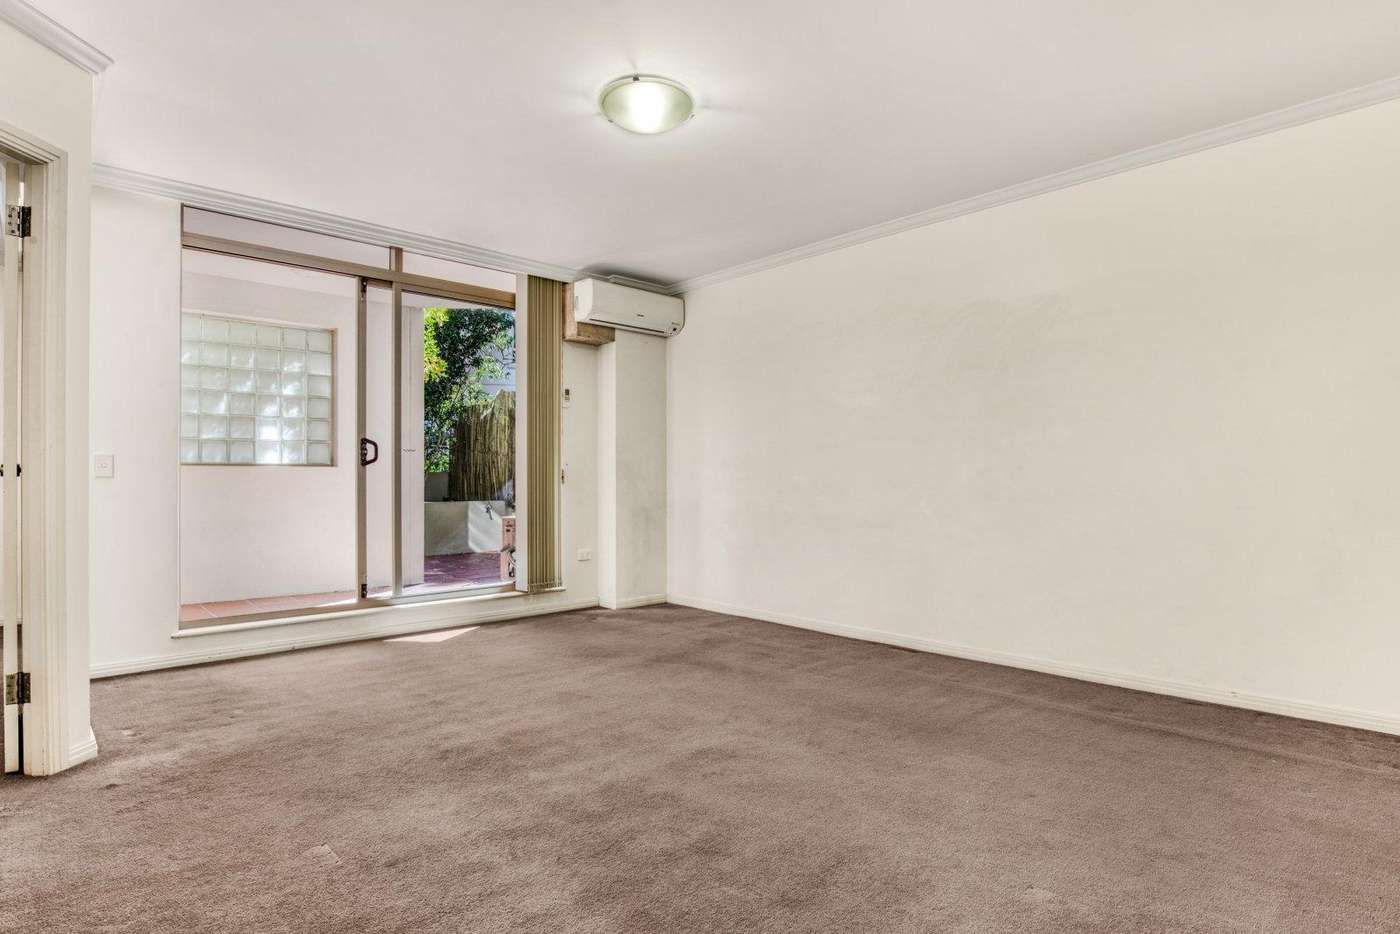 Main view of Homely apartment listing, 106/28 Warayama Place, Rozelle NSW 2039